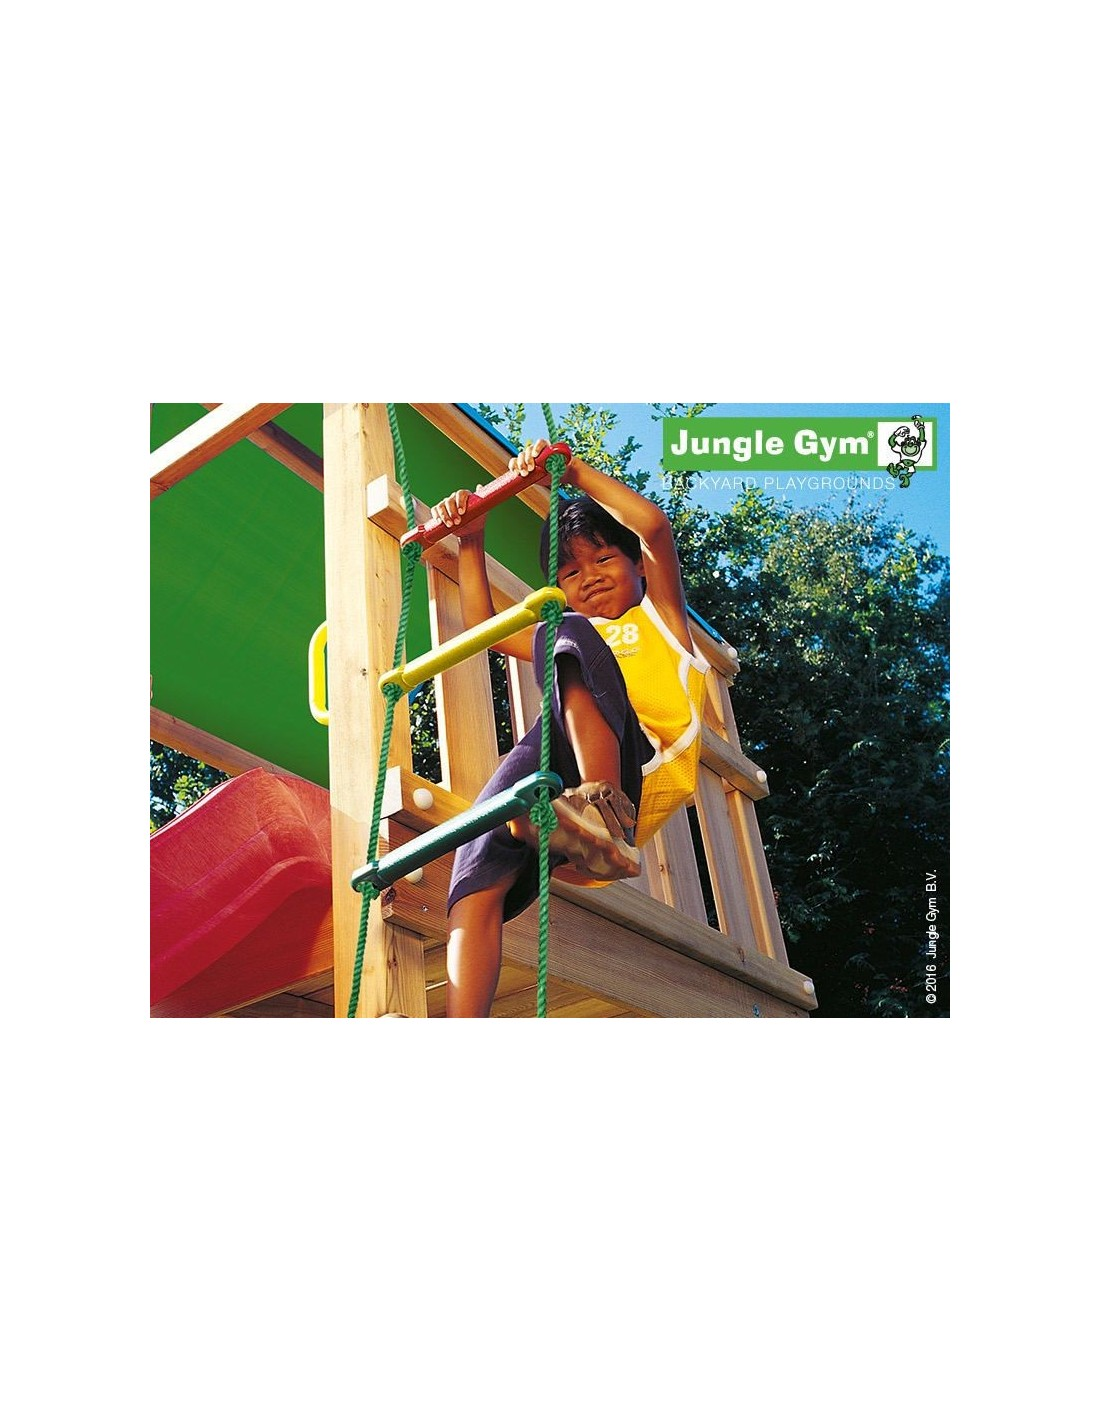 tour de jeux lodge climb x 39 tra toboggan de m jungle gym. Black Bedroom Furniture Sets. Home Design Ideas